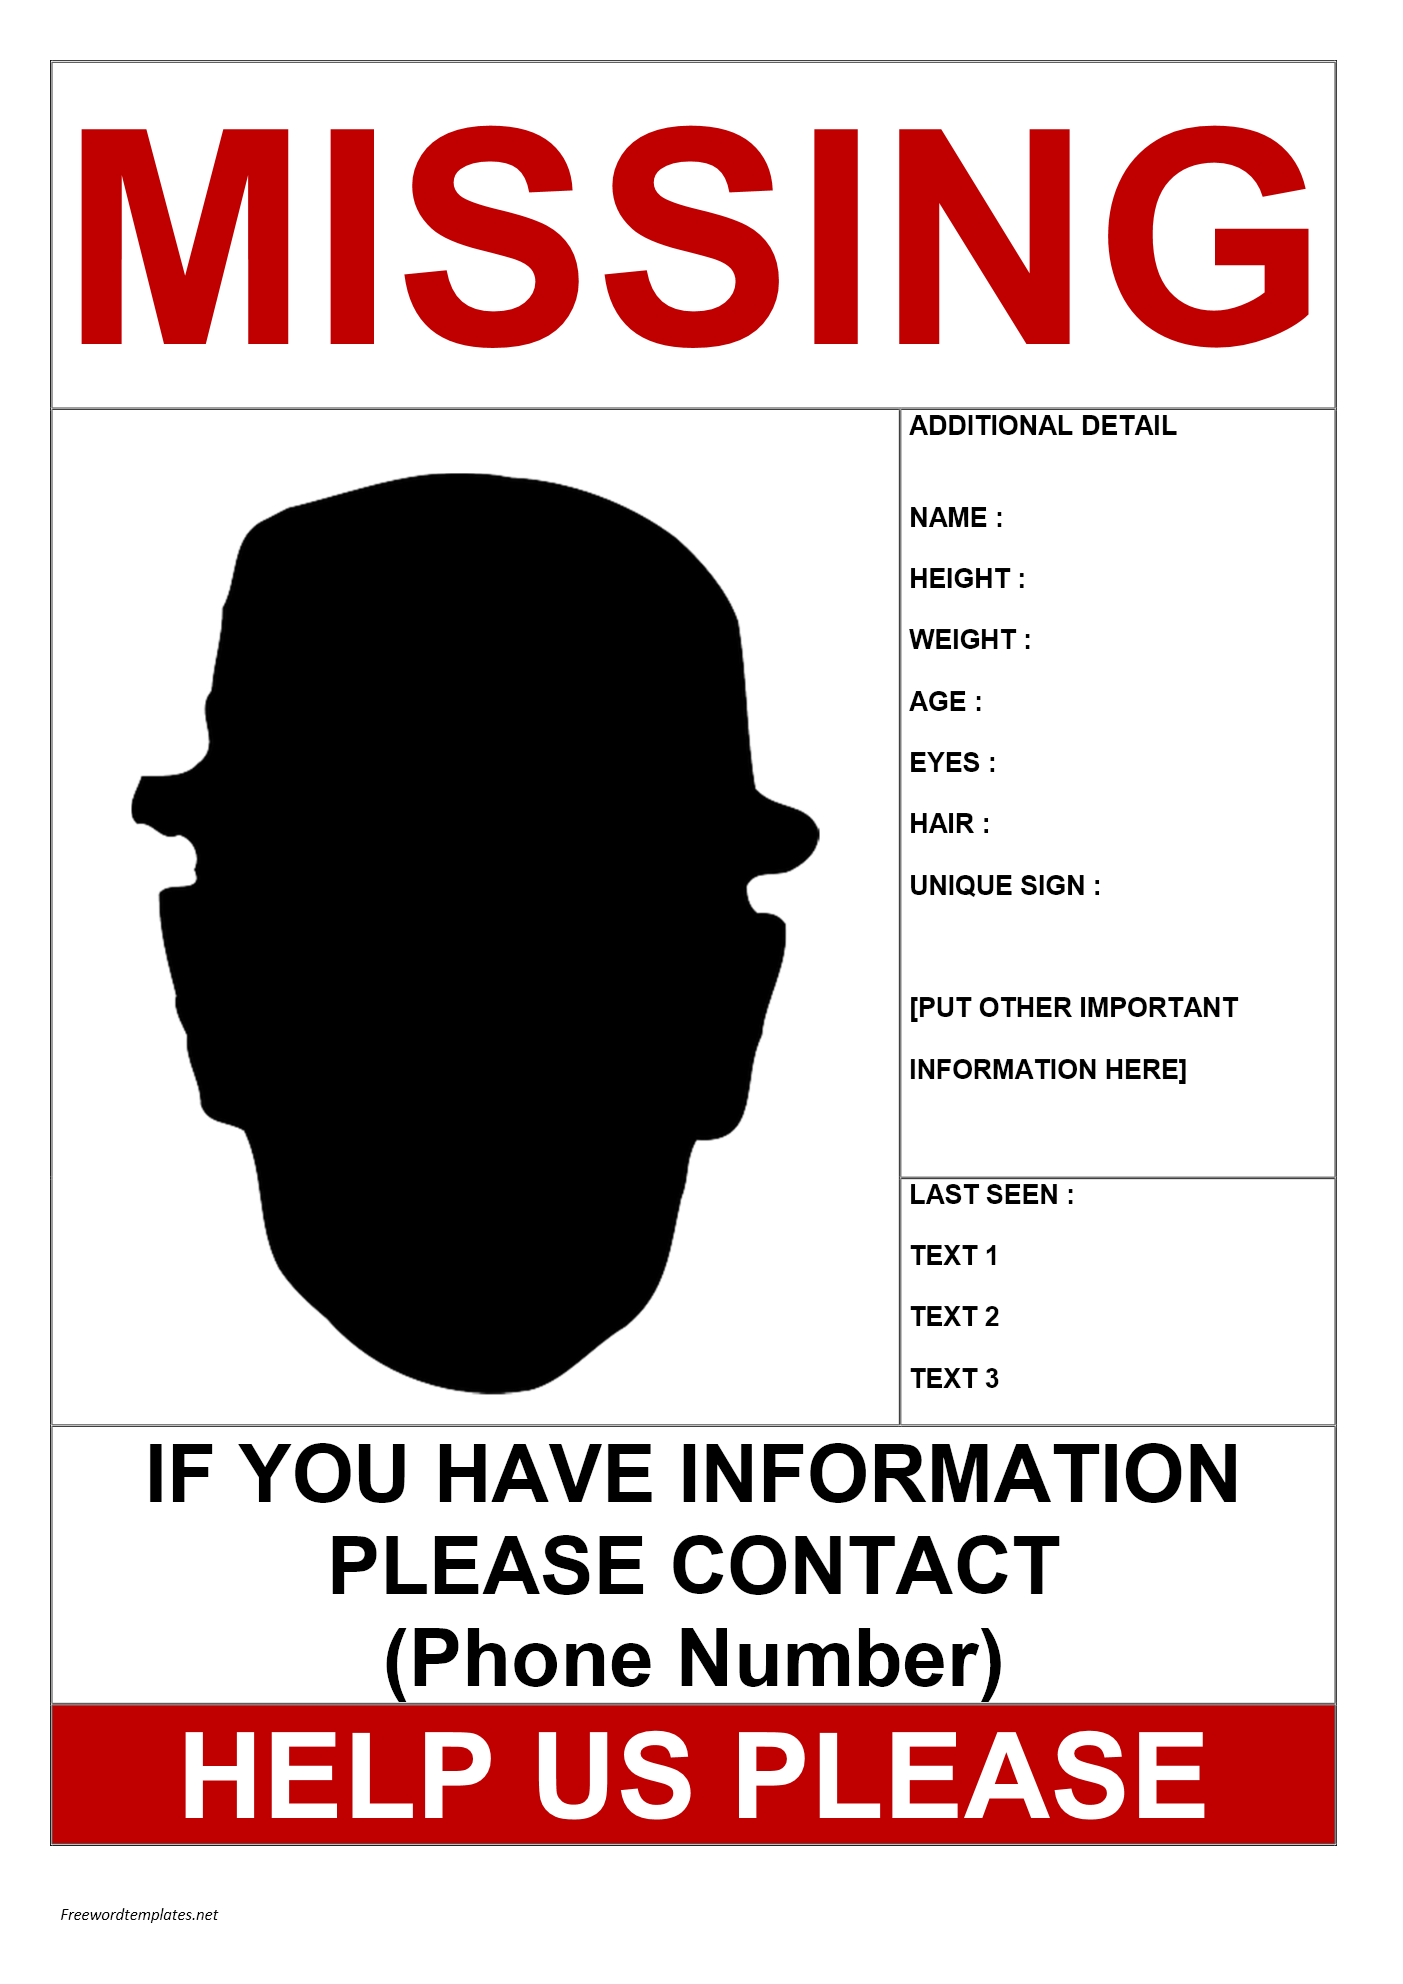 Free Help to find missing person template word | Templates at